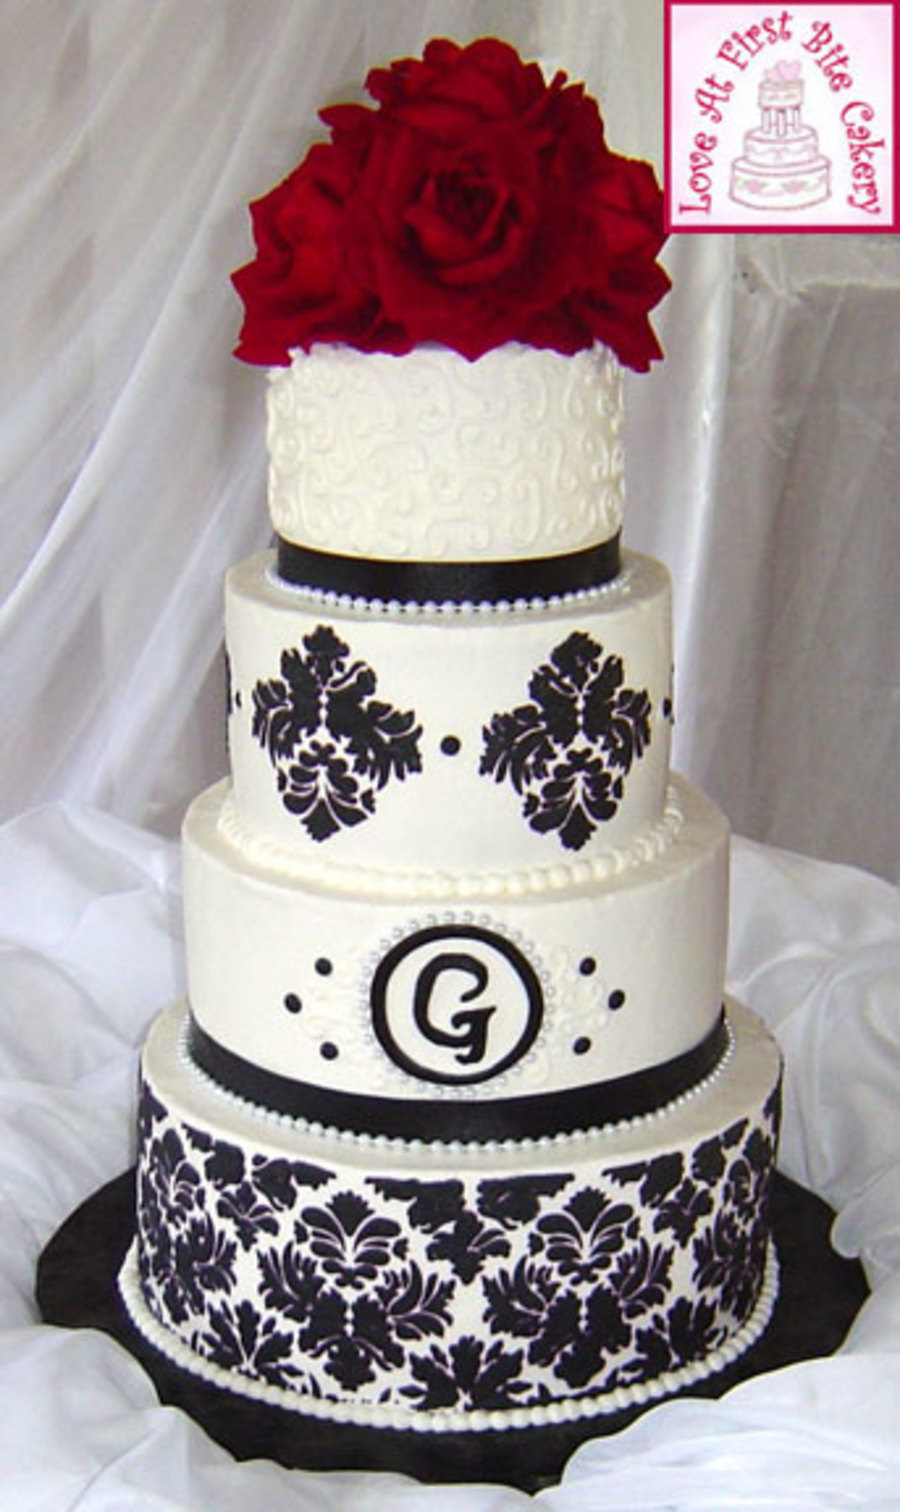 Stenciled Black White Red Wedding Cake On Central